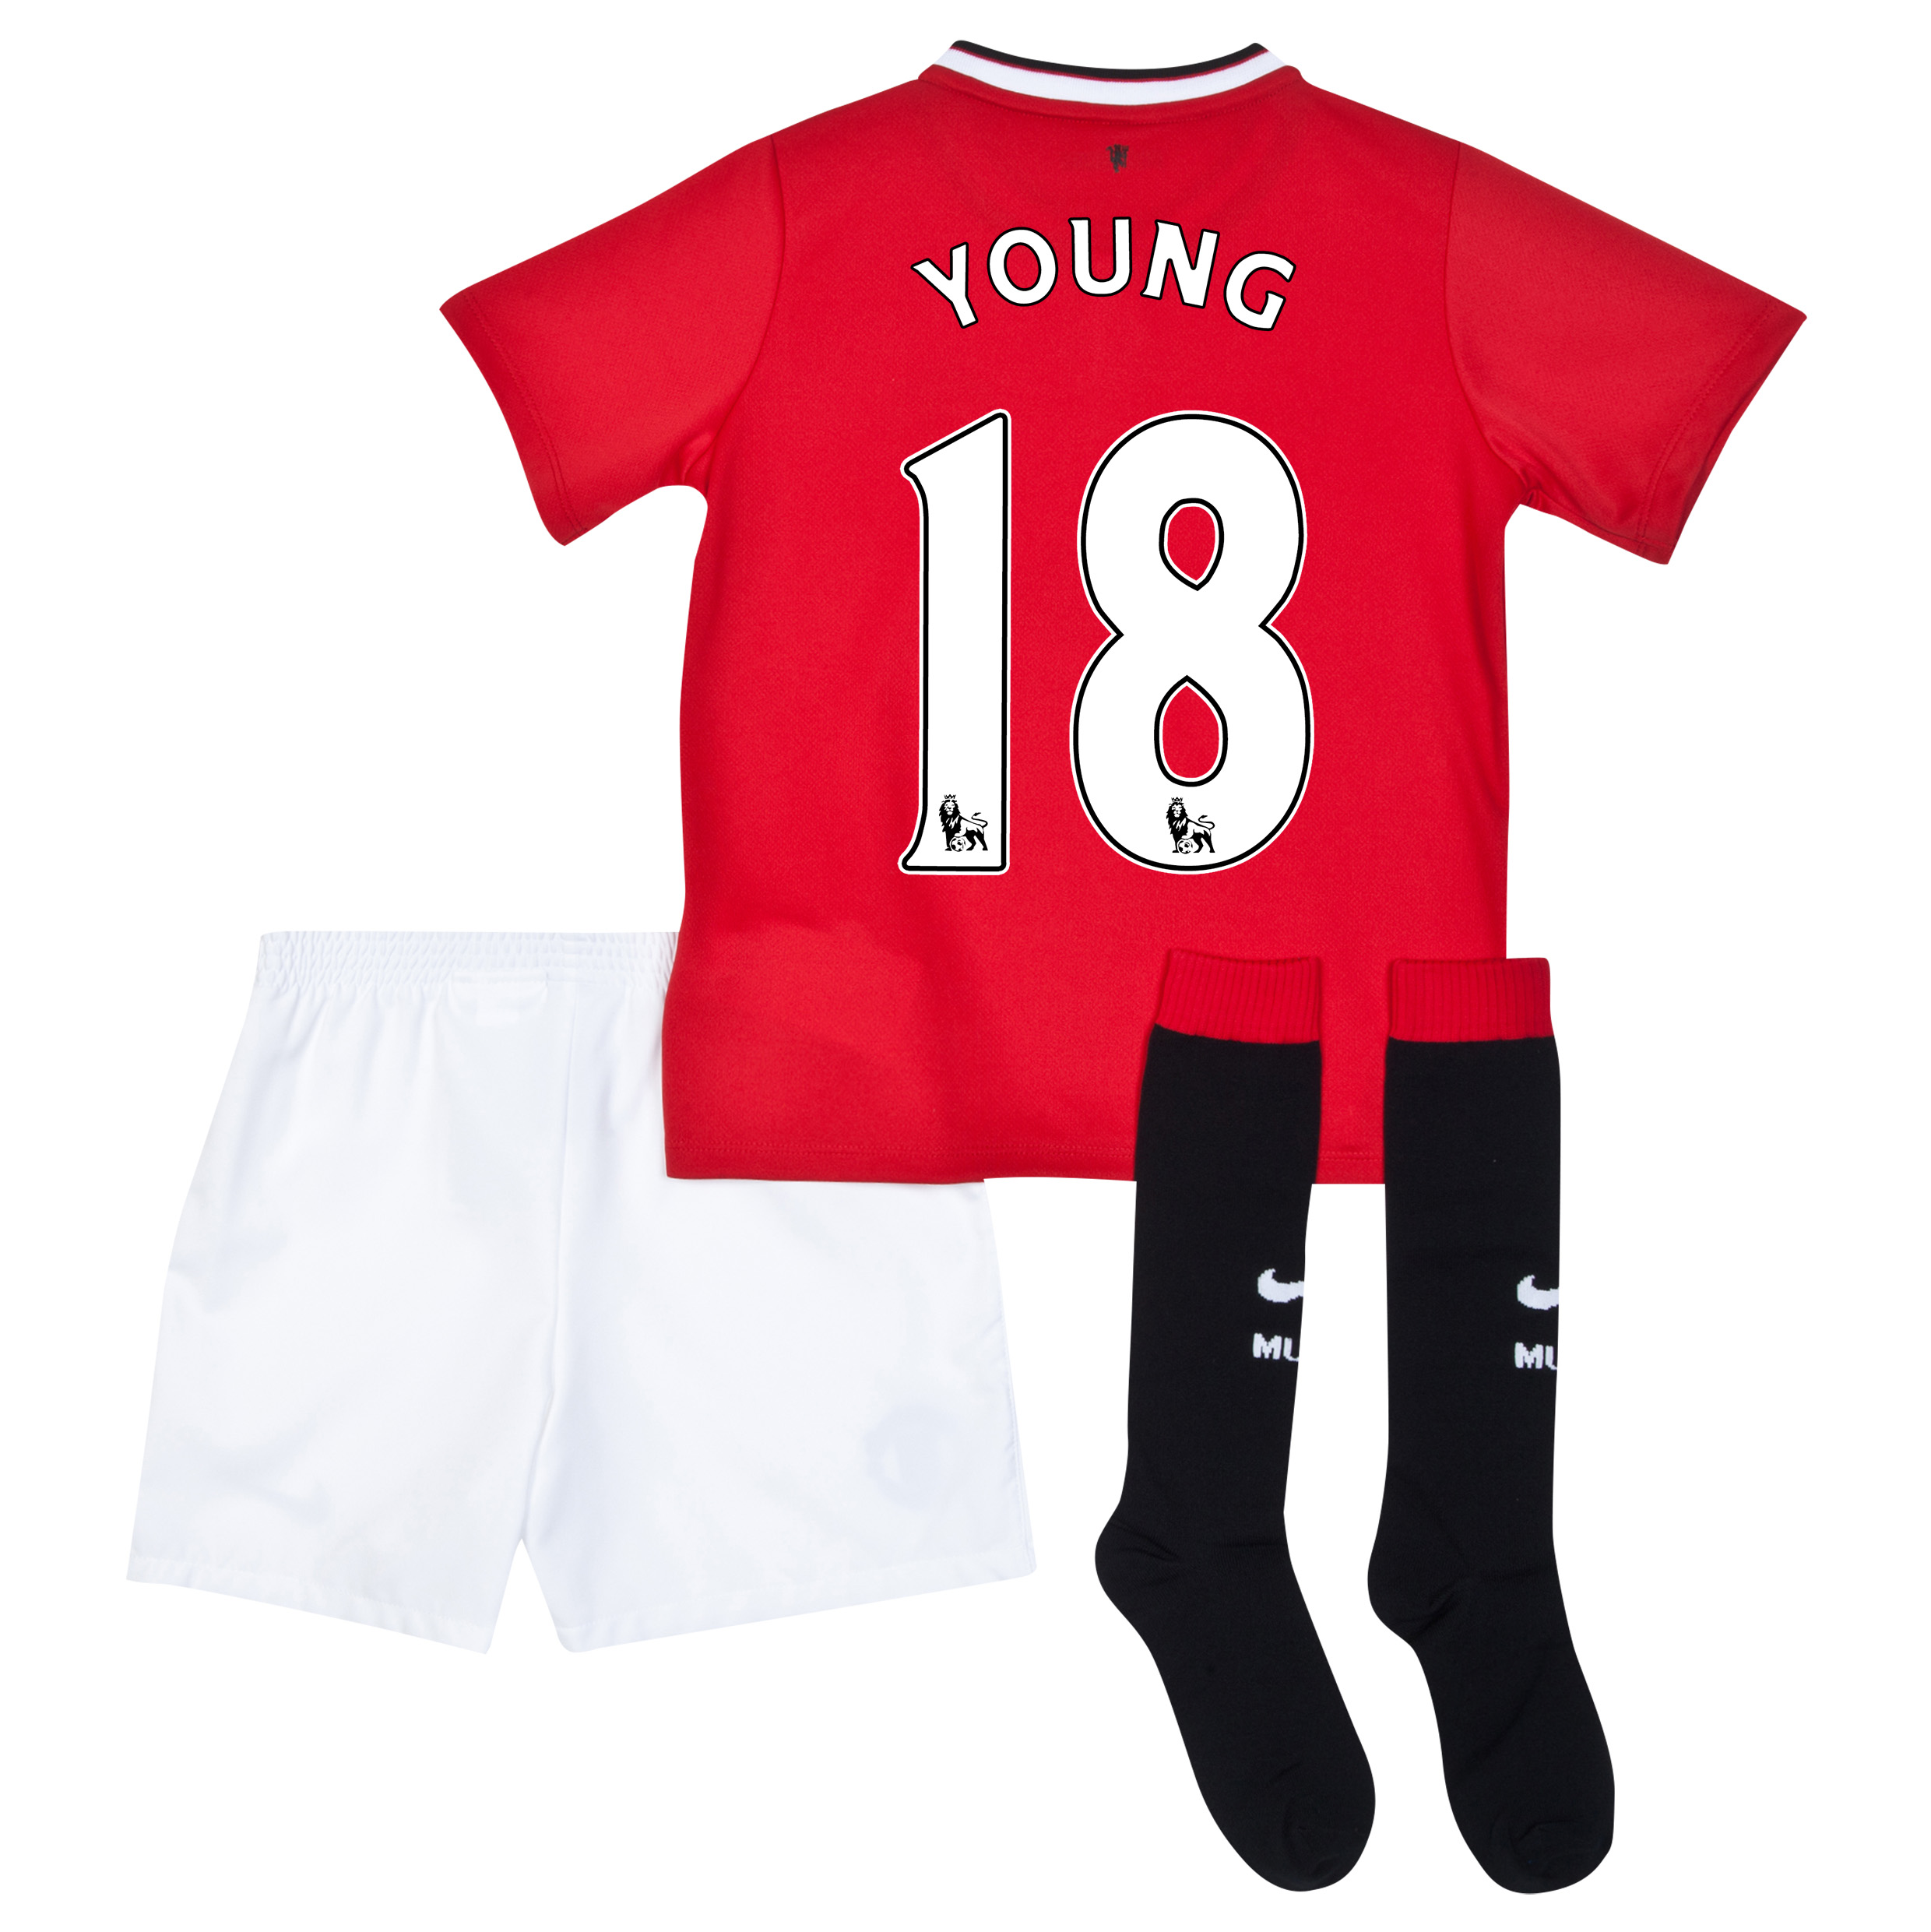 Manchester United Home Kit 2014/15 - Little Boys with Young 18 printing